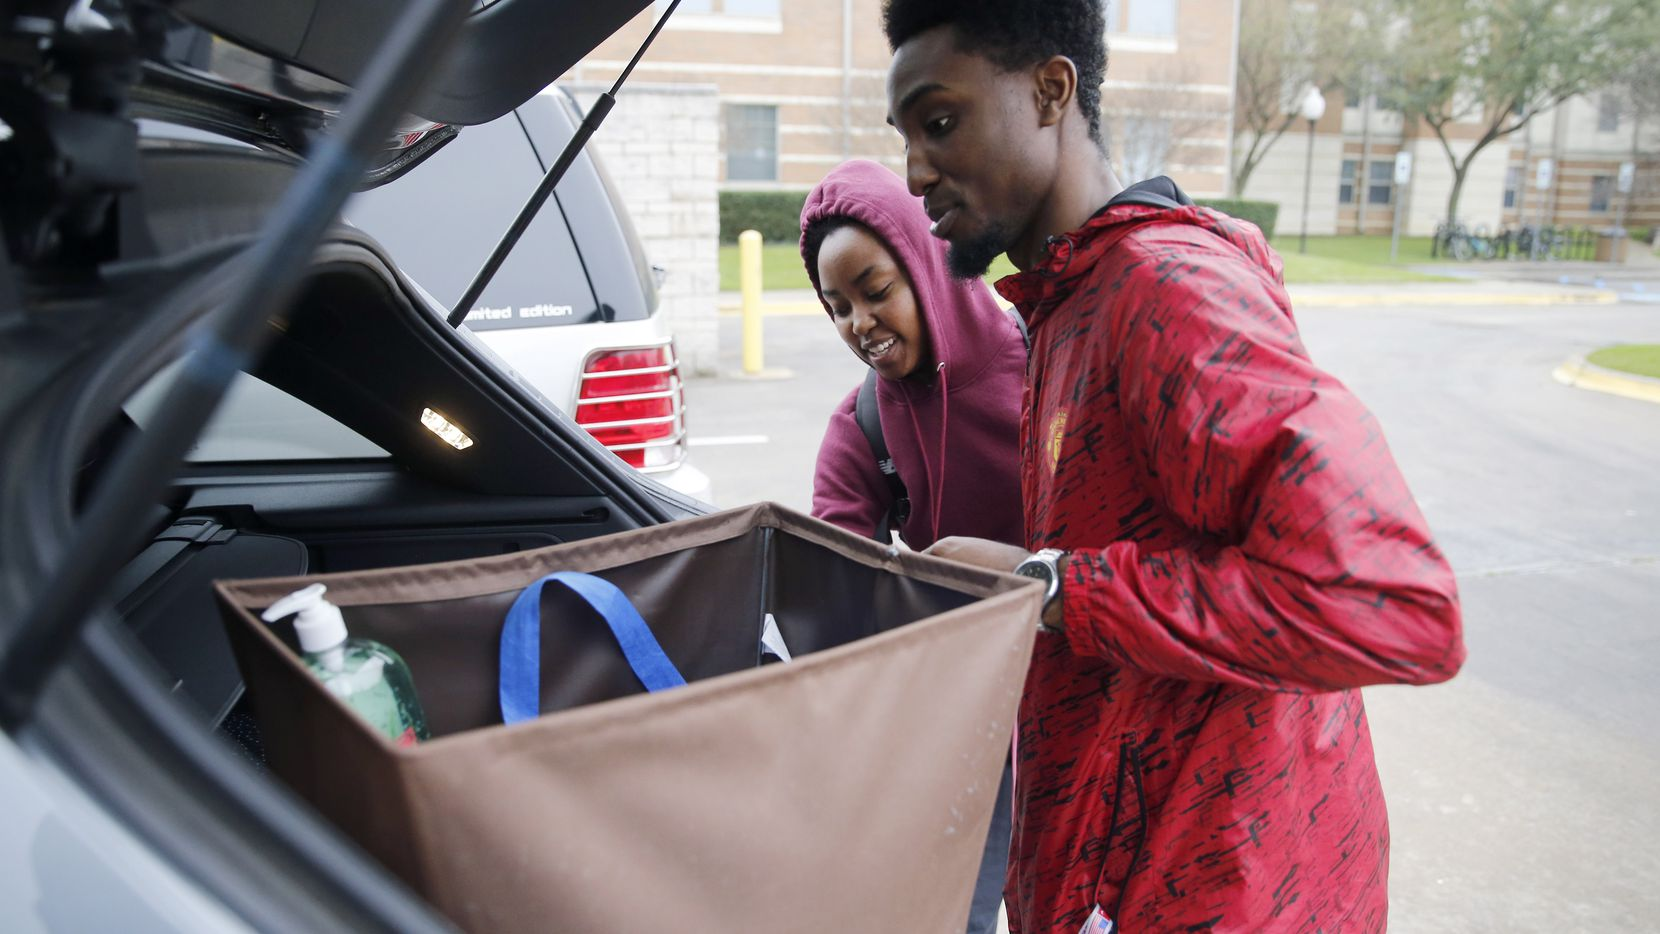 Engineering students Justin Battle and Tiara Lewis pack up items to move out Kalpana Chawla Hall at the University of Texas at Arlington on Tuesday, March 17, 2020.